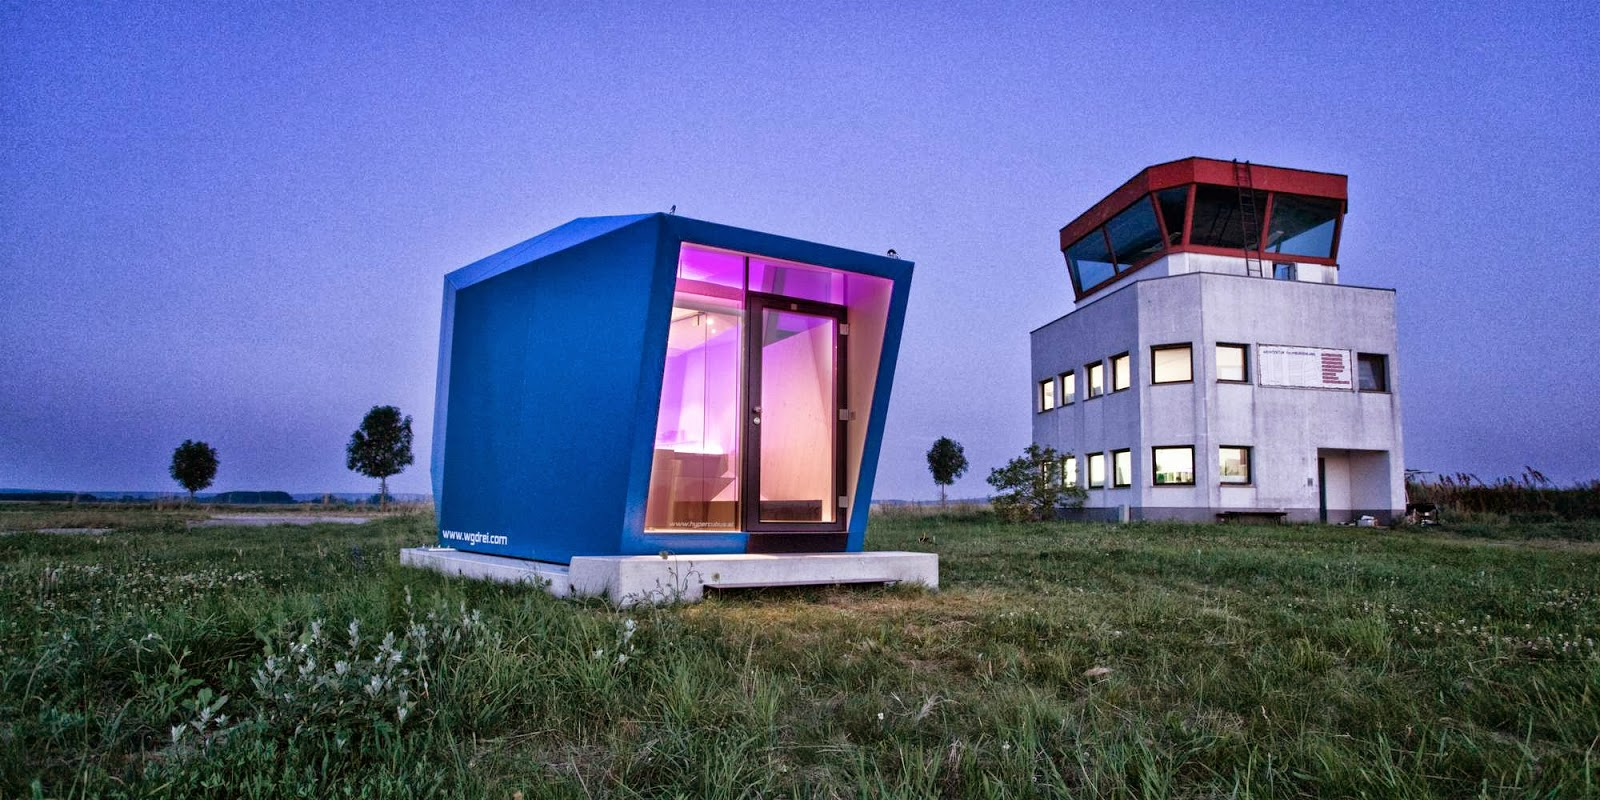 unique-exterior-Transportable-House-Hypercubus